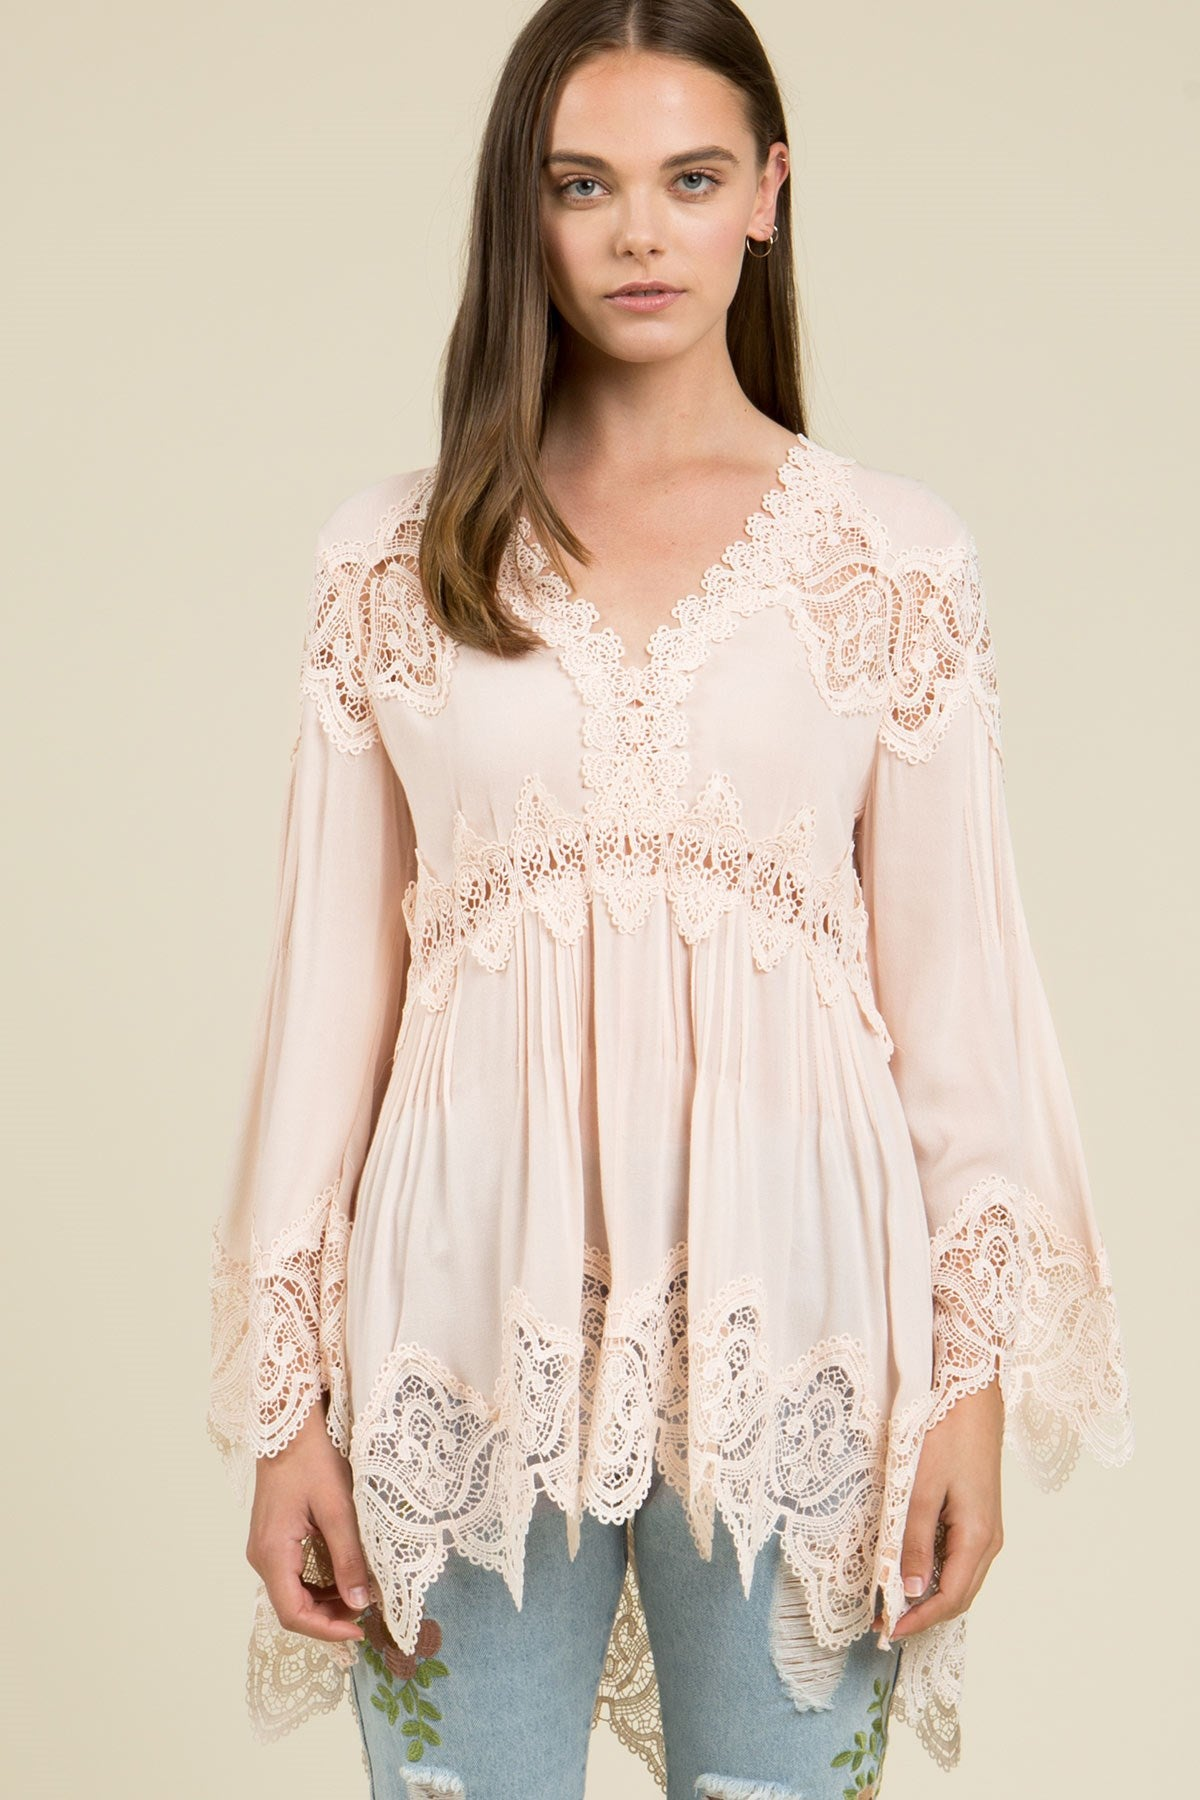 Front view young woman wearing pink empire waist lace trim tunic top